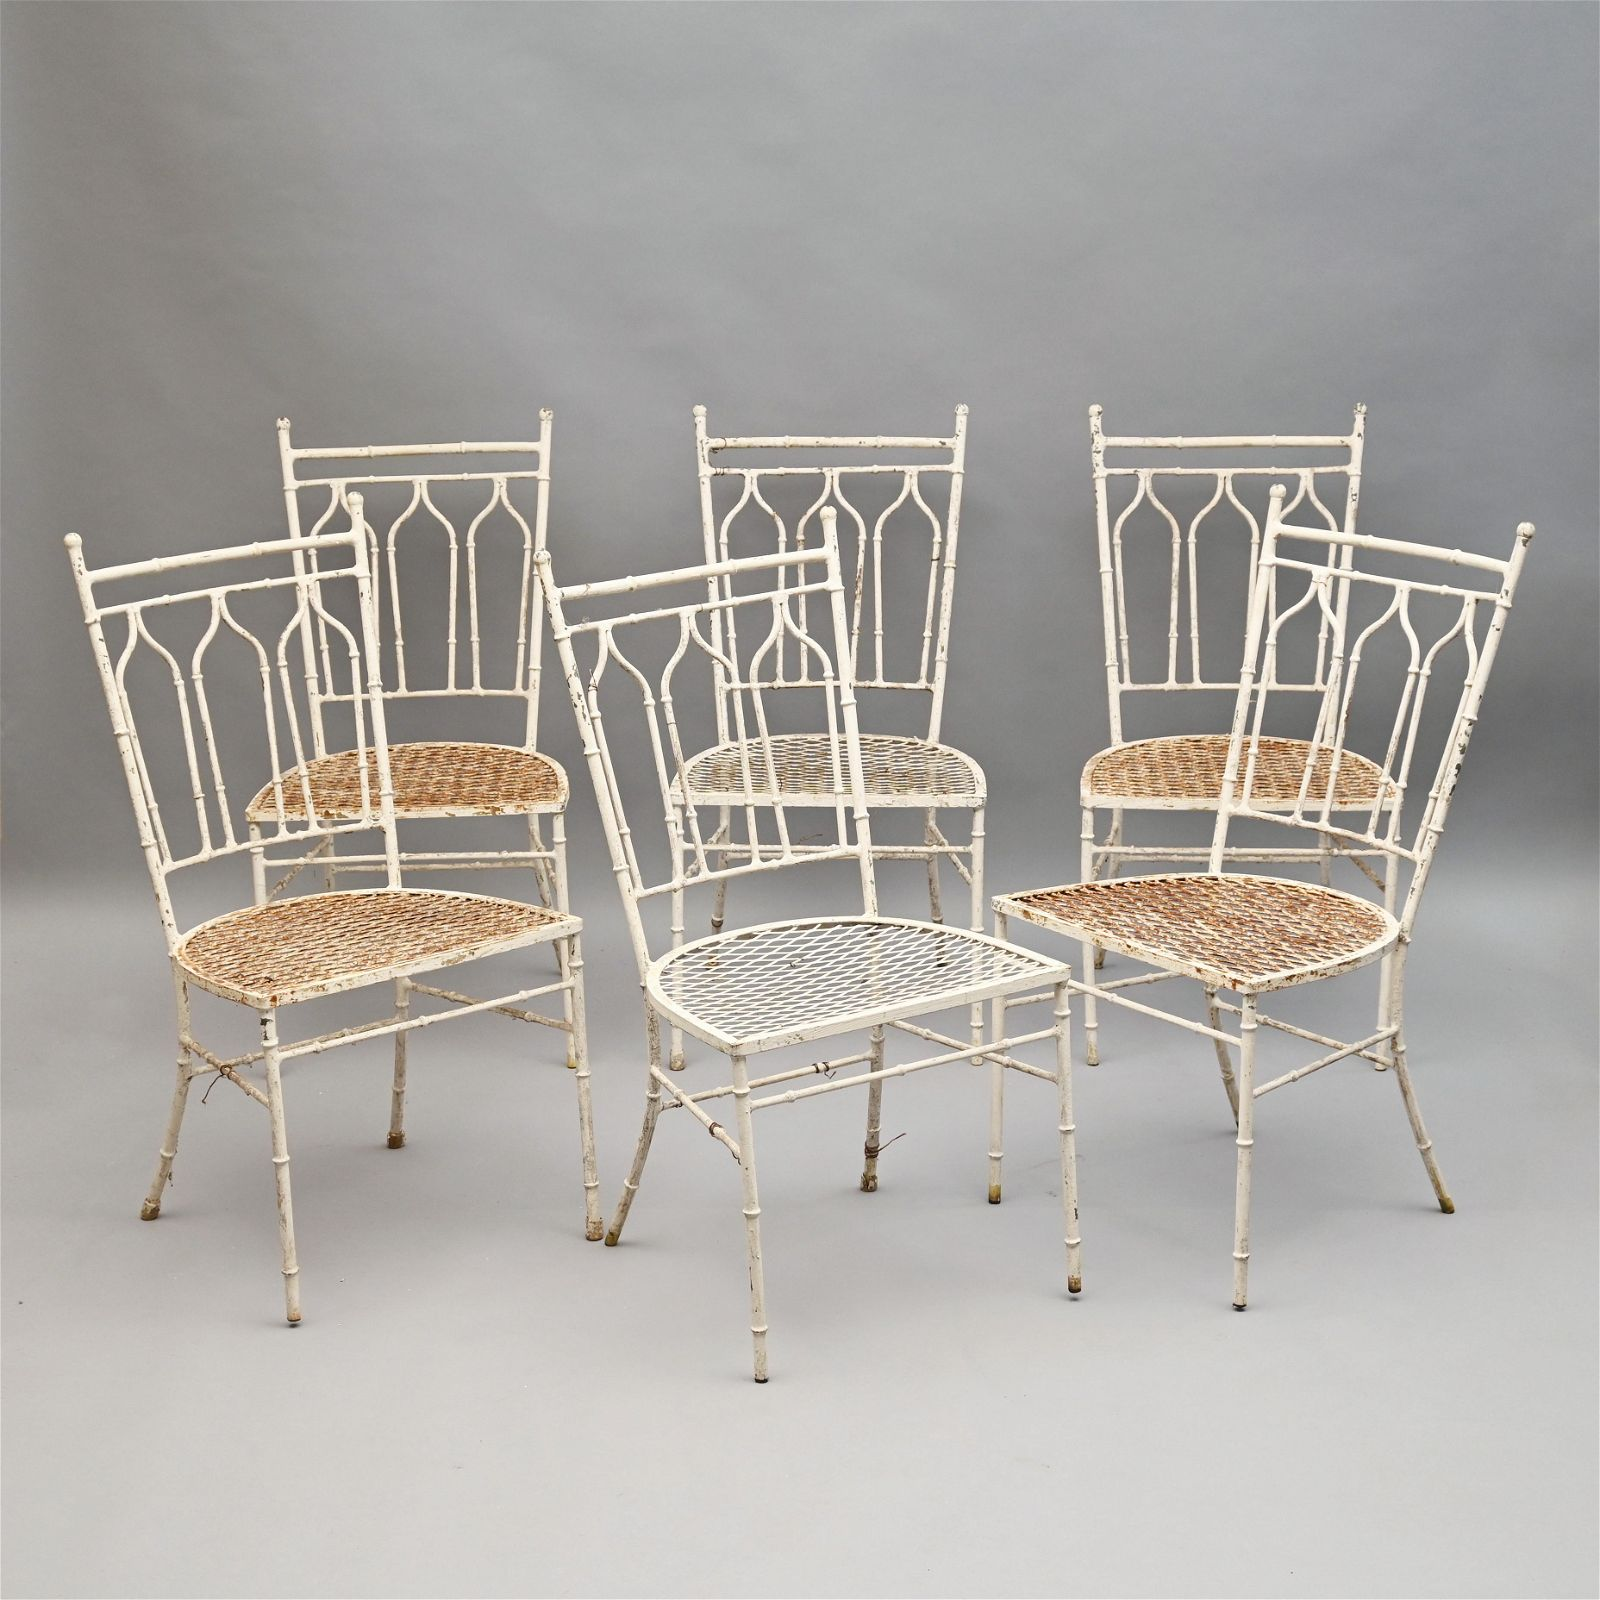 Set of Six Cast Iron Patio Chairs